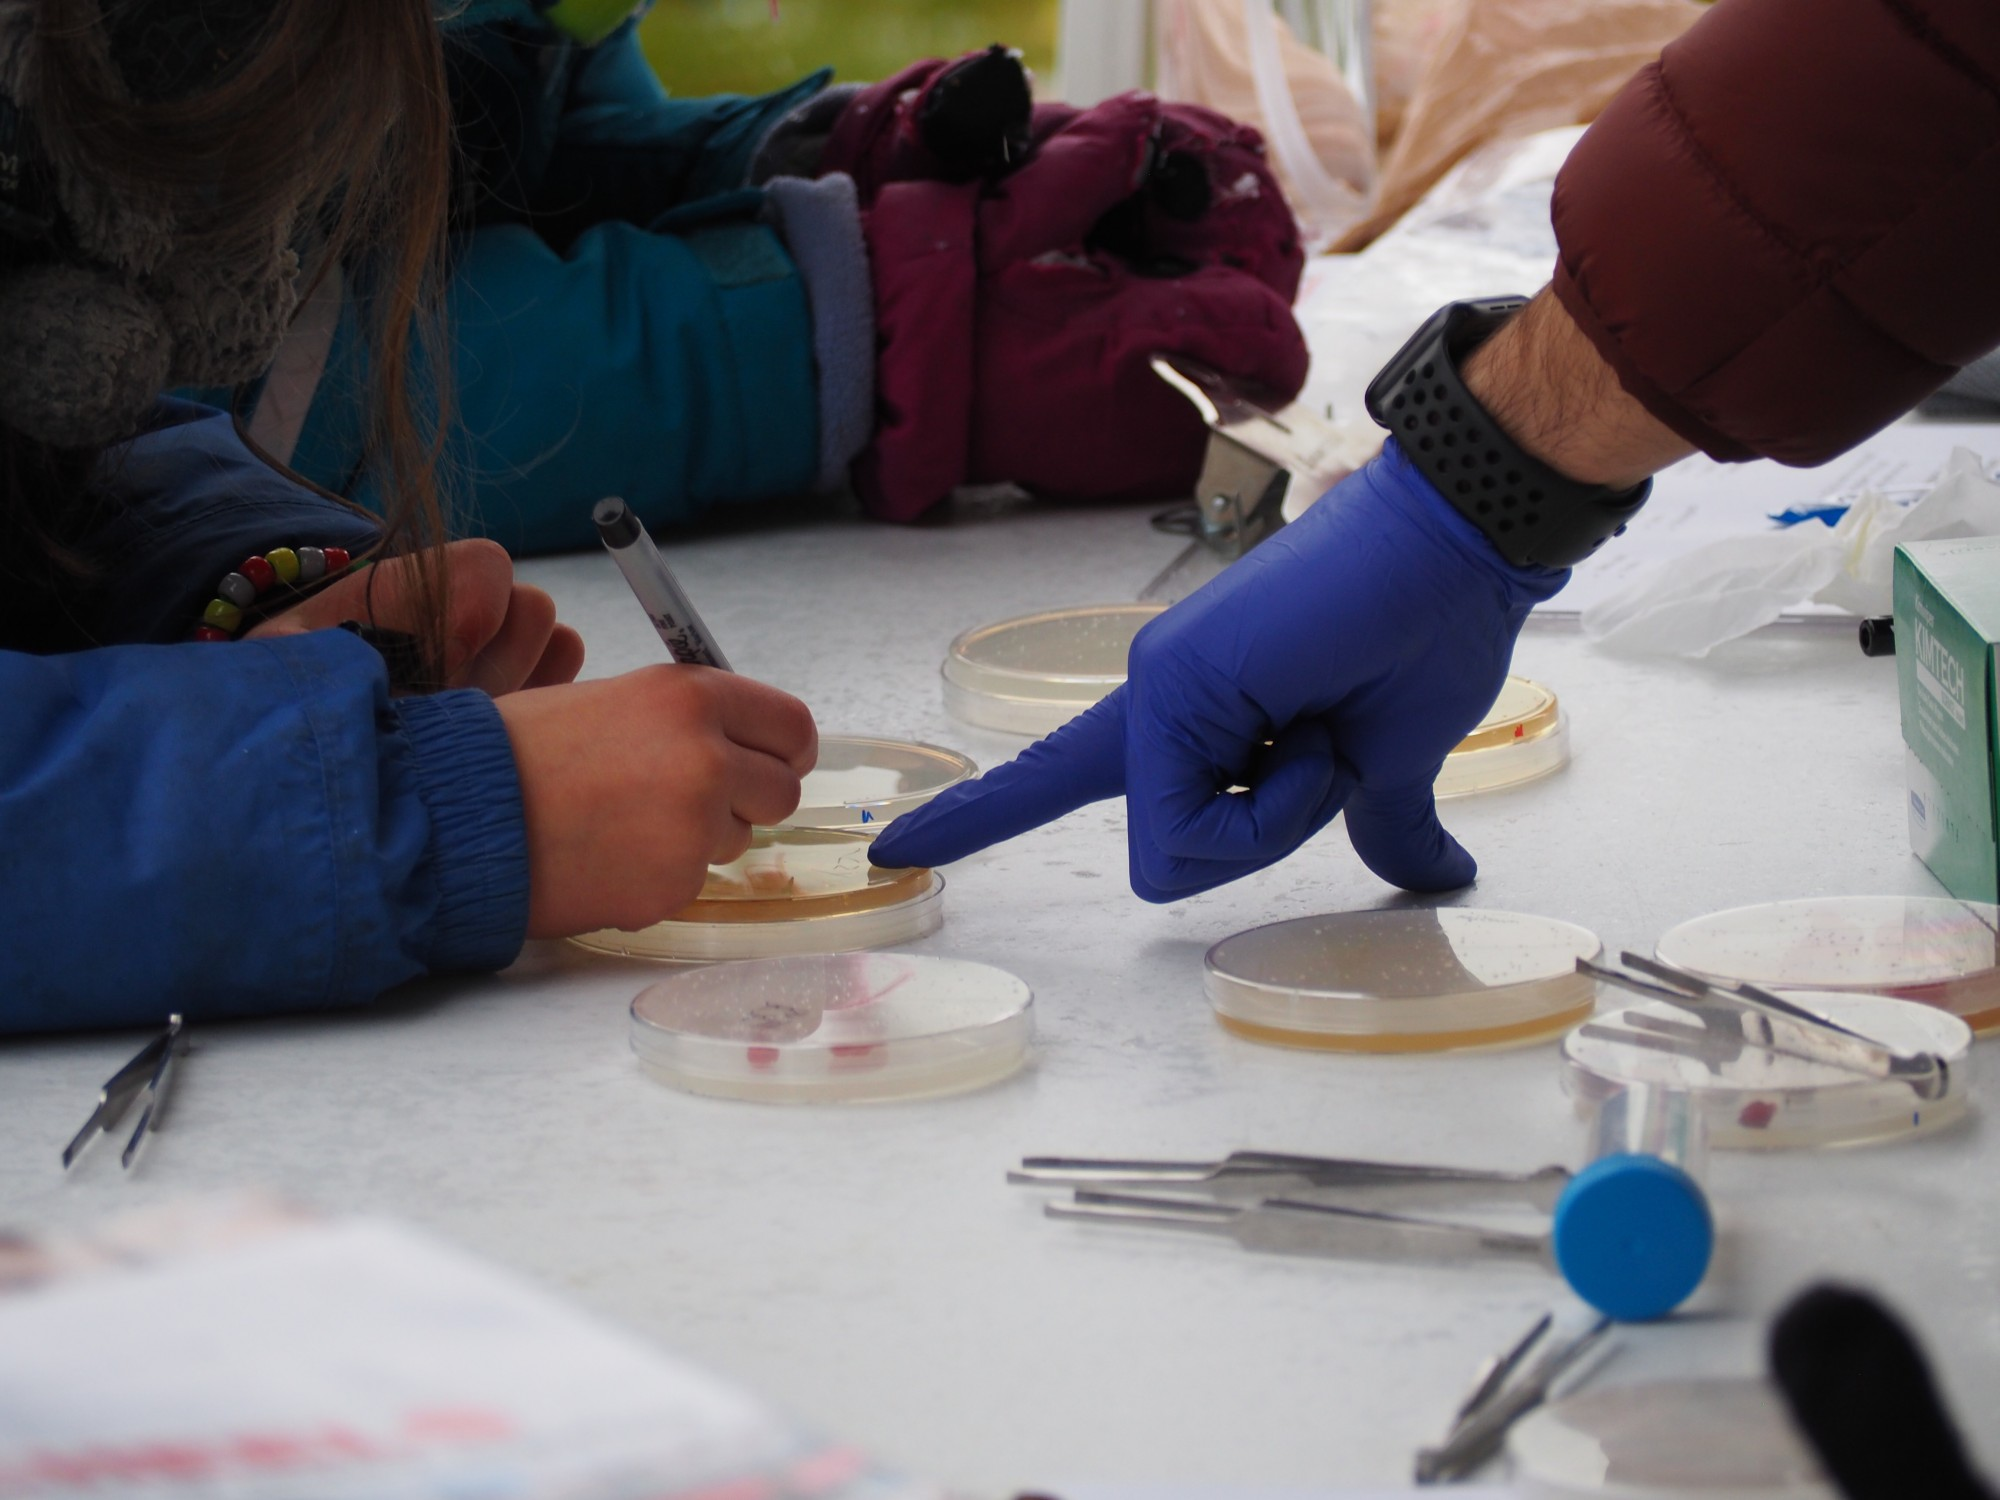 A student writes their name on a petri dish while being instructed by a UAF researcher.